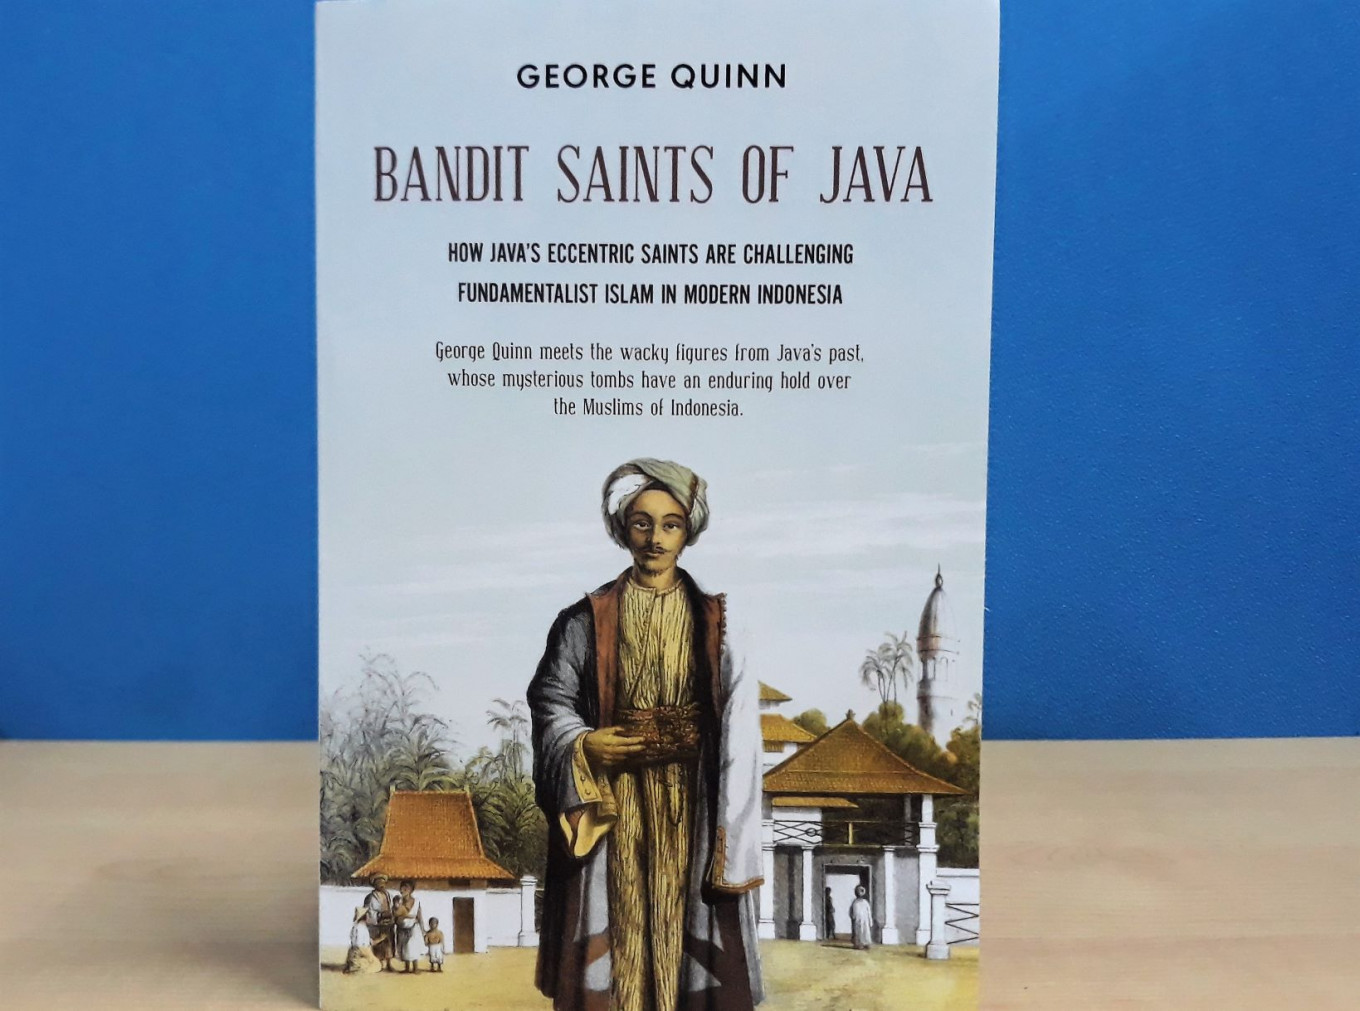 'Bandit Saints of Java': Where Islam meets local history